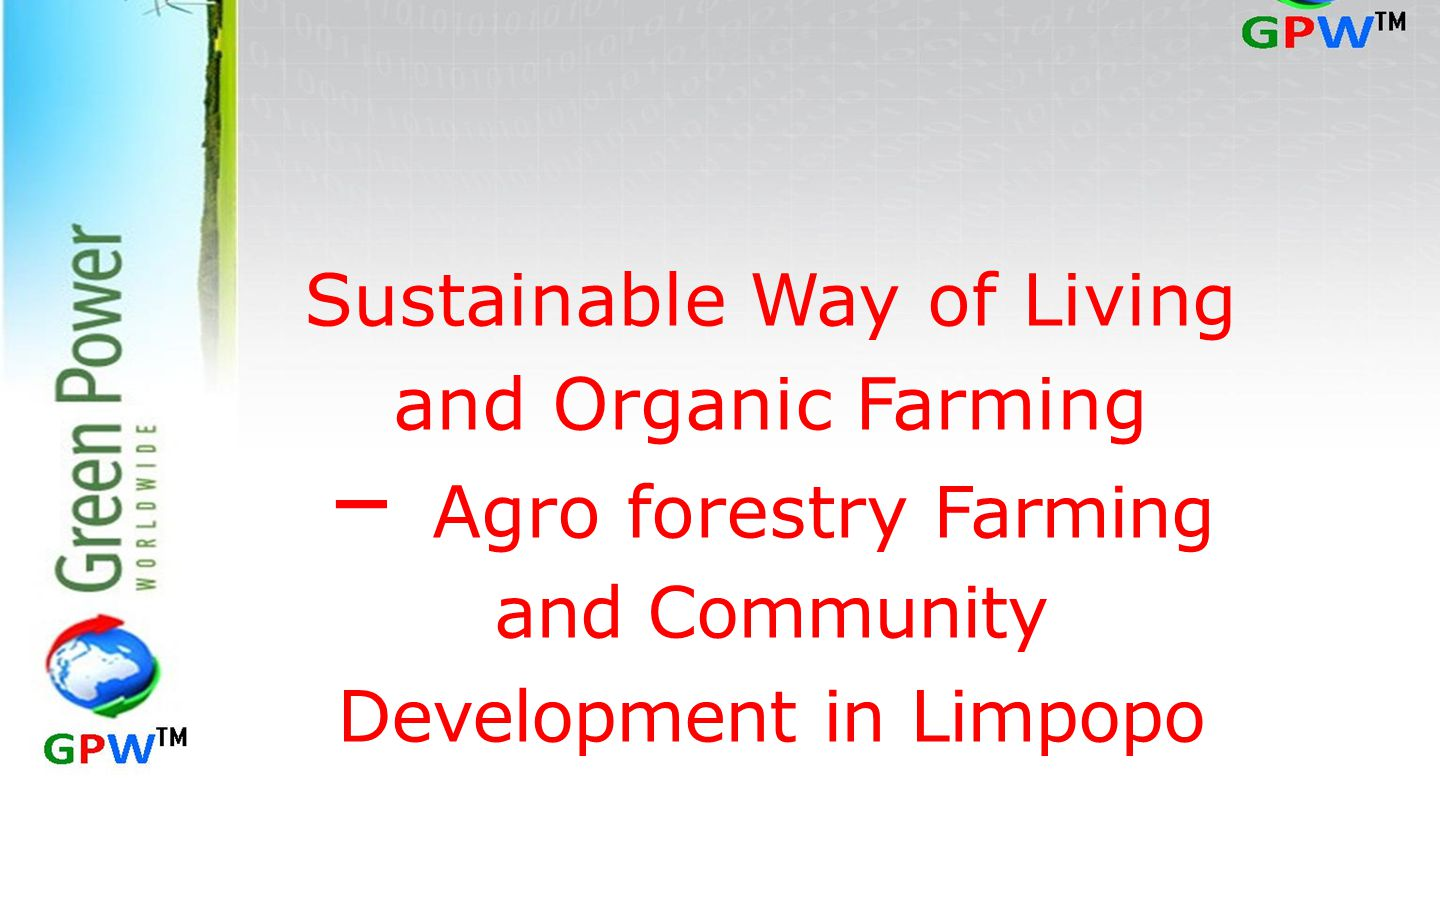 – Agro forestry Farming and Community Development in Limpopo